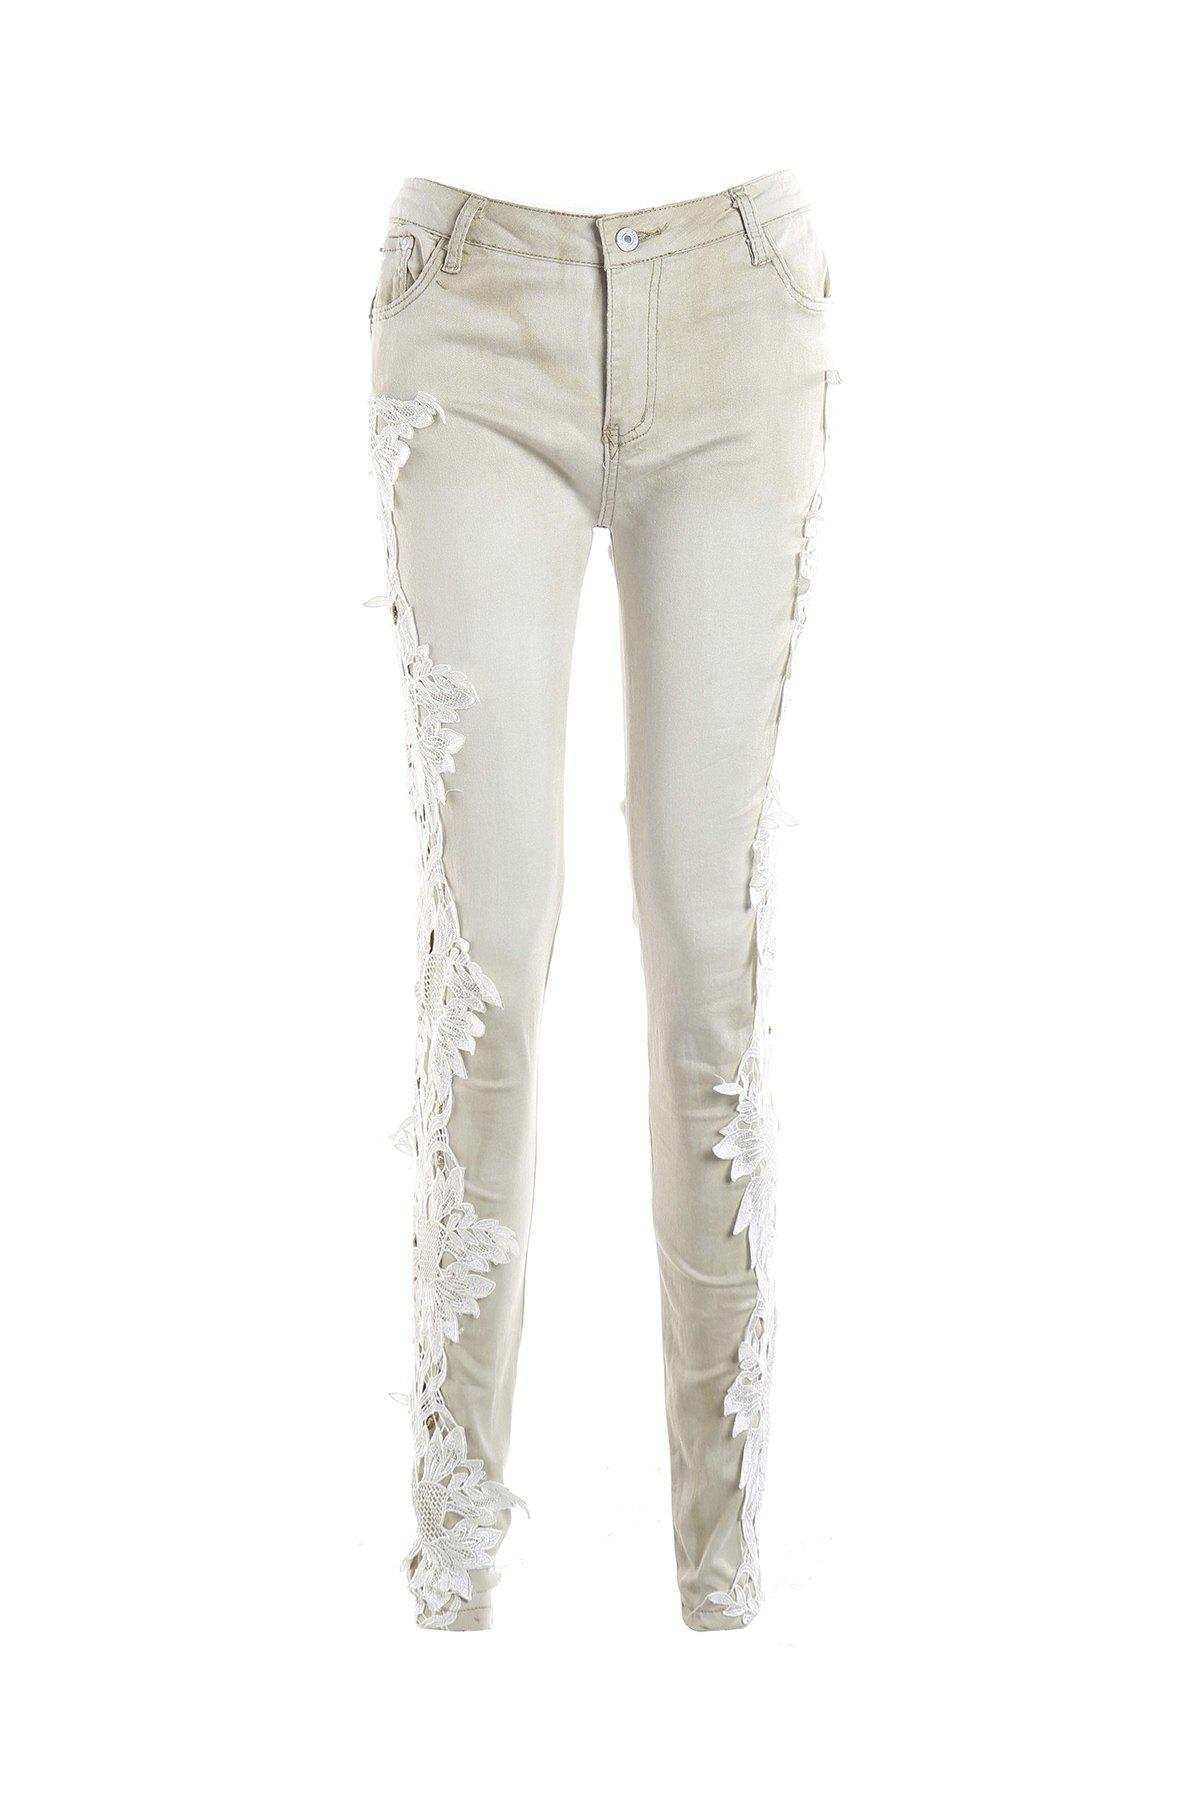 Casual Women's Lace Splicing Skinny Jeans - LIGHT APRICOT S